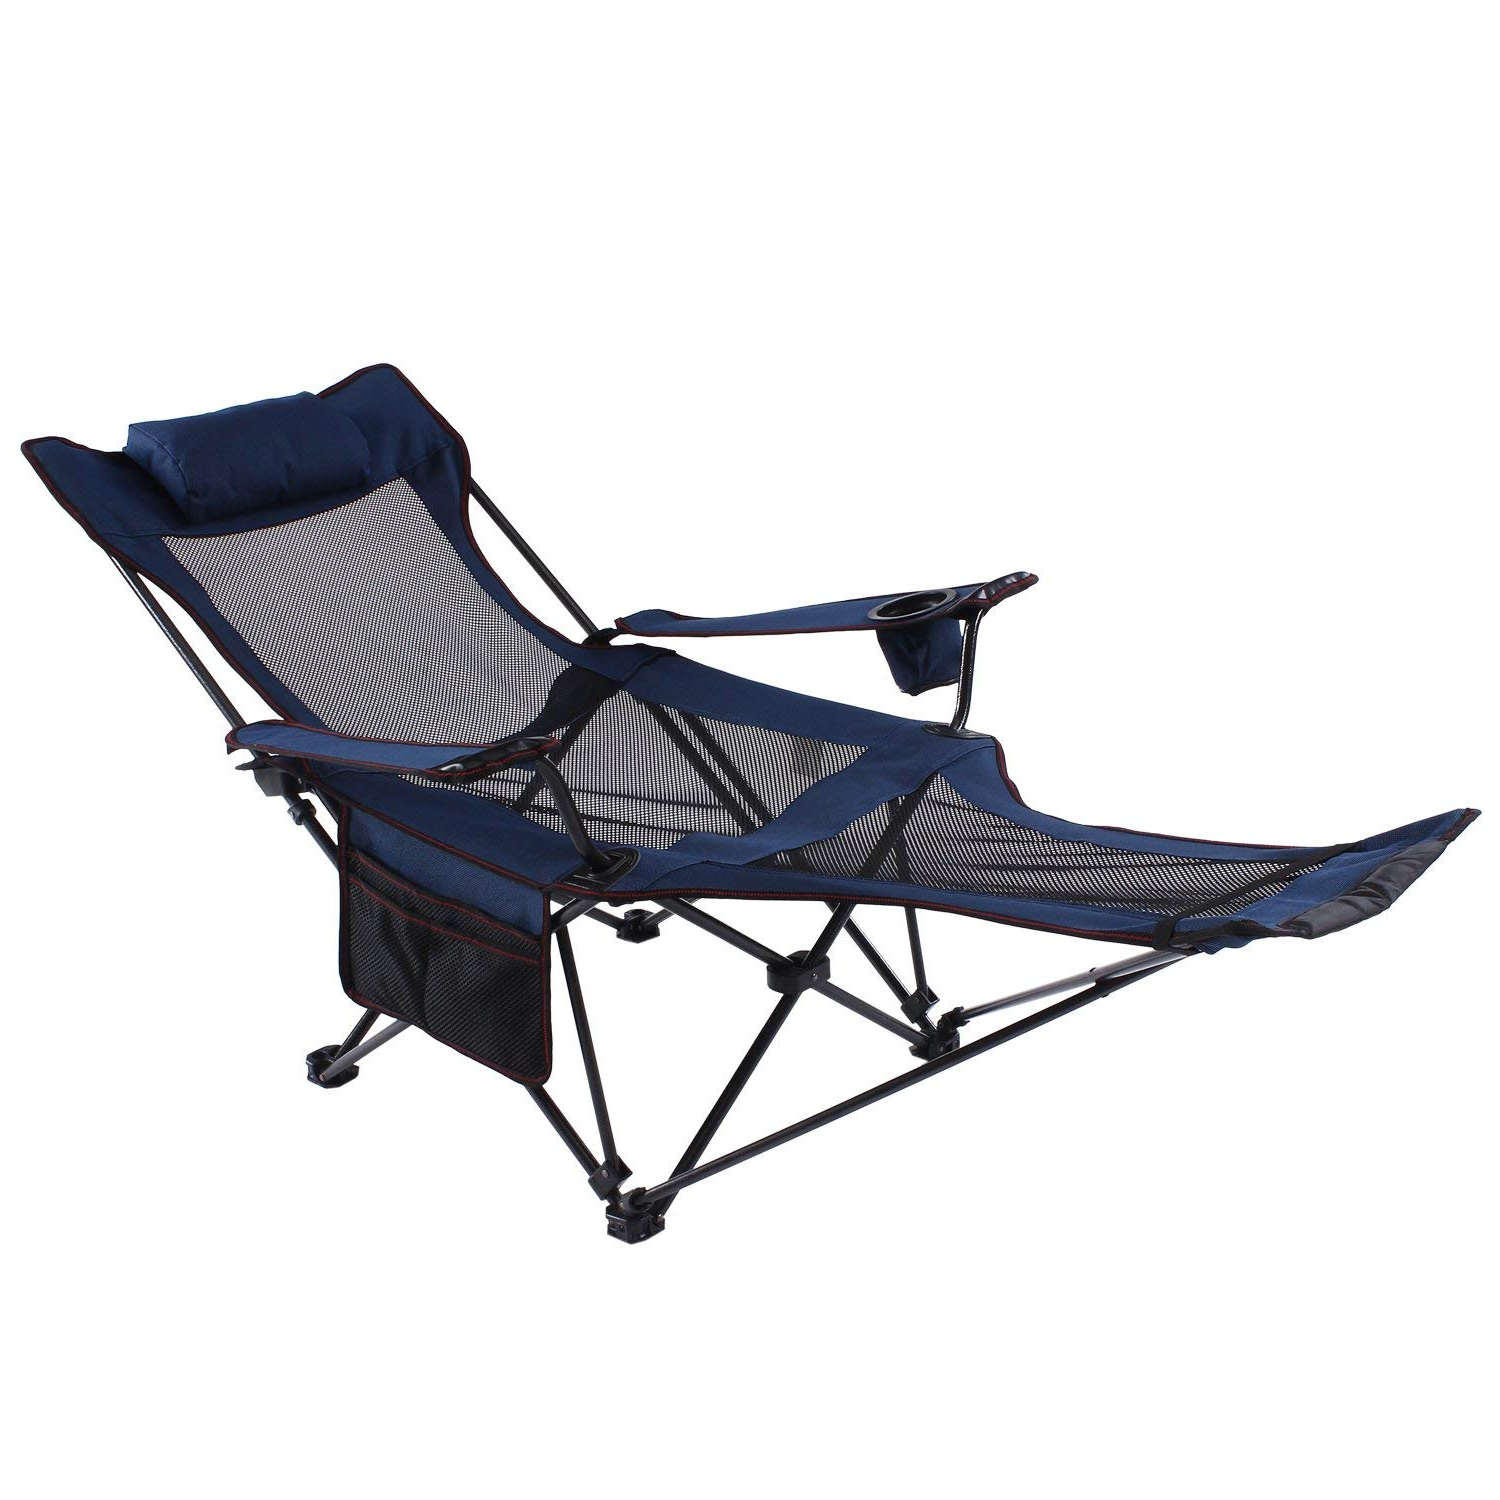 Favorite Seatopia Camping Recliner And Lounge Chair, Backpacking Folding Chair With  Headrest, Footrest And Storage Bag For Outdoor Camping, Bbq, 300Lbs Weight Throughout Foldable Camping And Lounge Chairs (View 6 of 25)